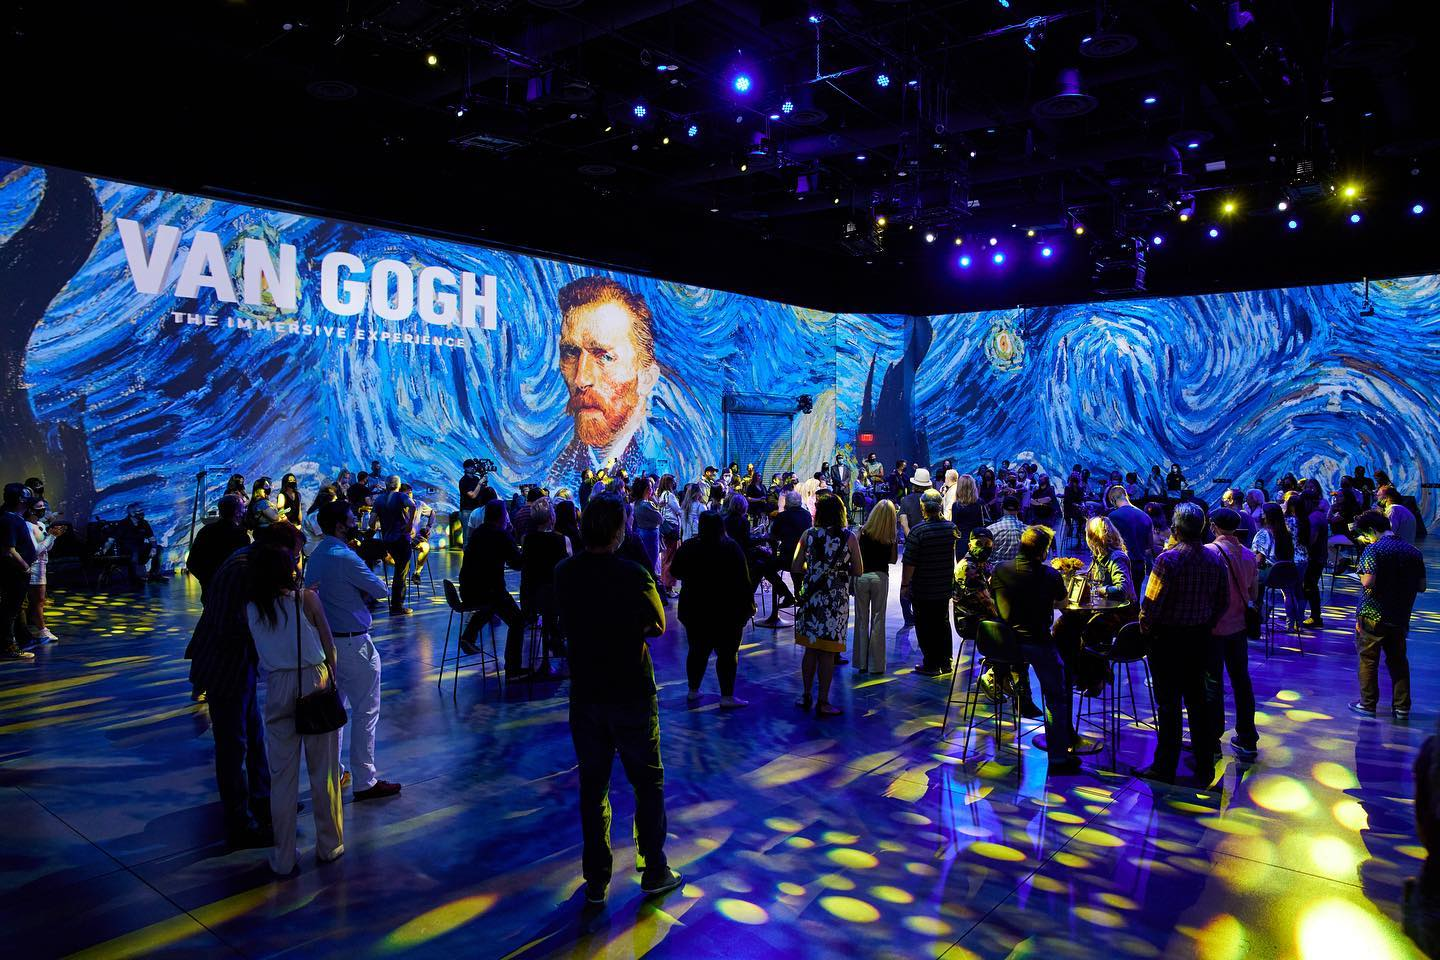 Van Gogh the immersive experience at Area 15